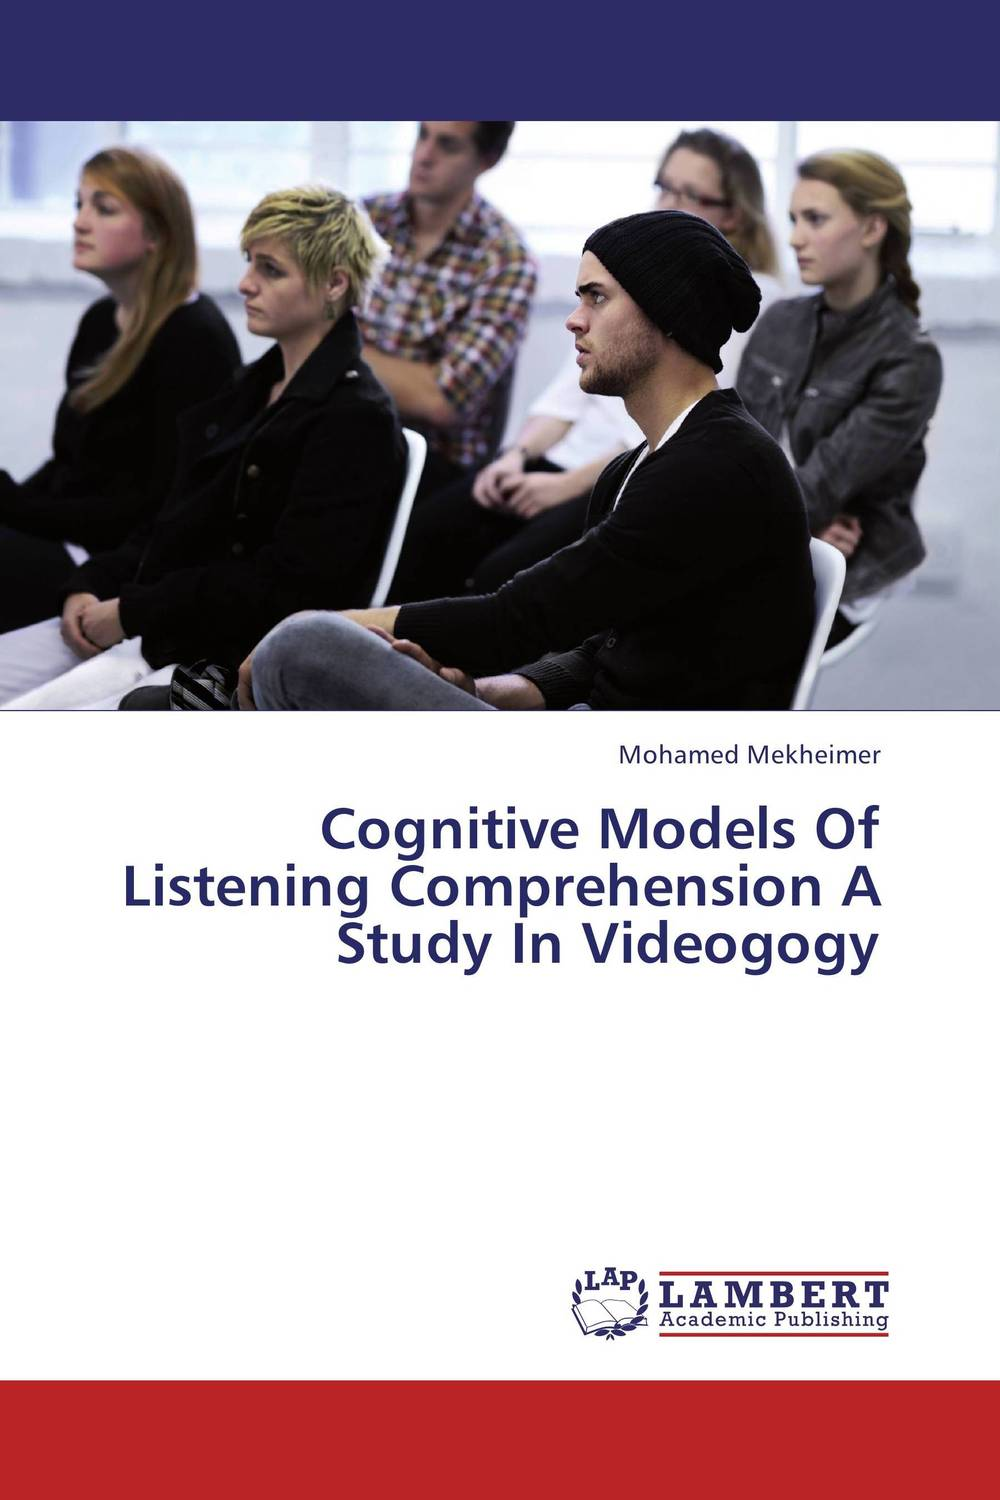 Cognitive Models Of Listening Comprehension A Study In Videogogy a cognitive semantics of translating metonyms in the glorious qur an